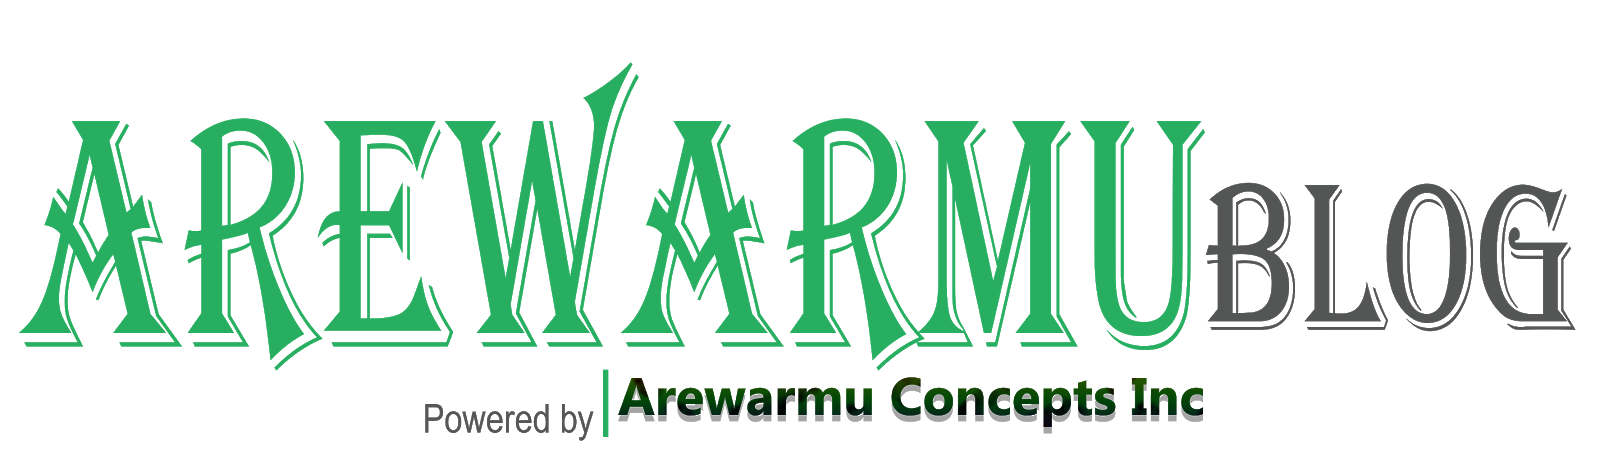 ArewarmuBlog | Best Arewa News and Entertainment Blog